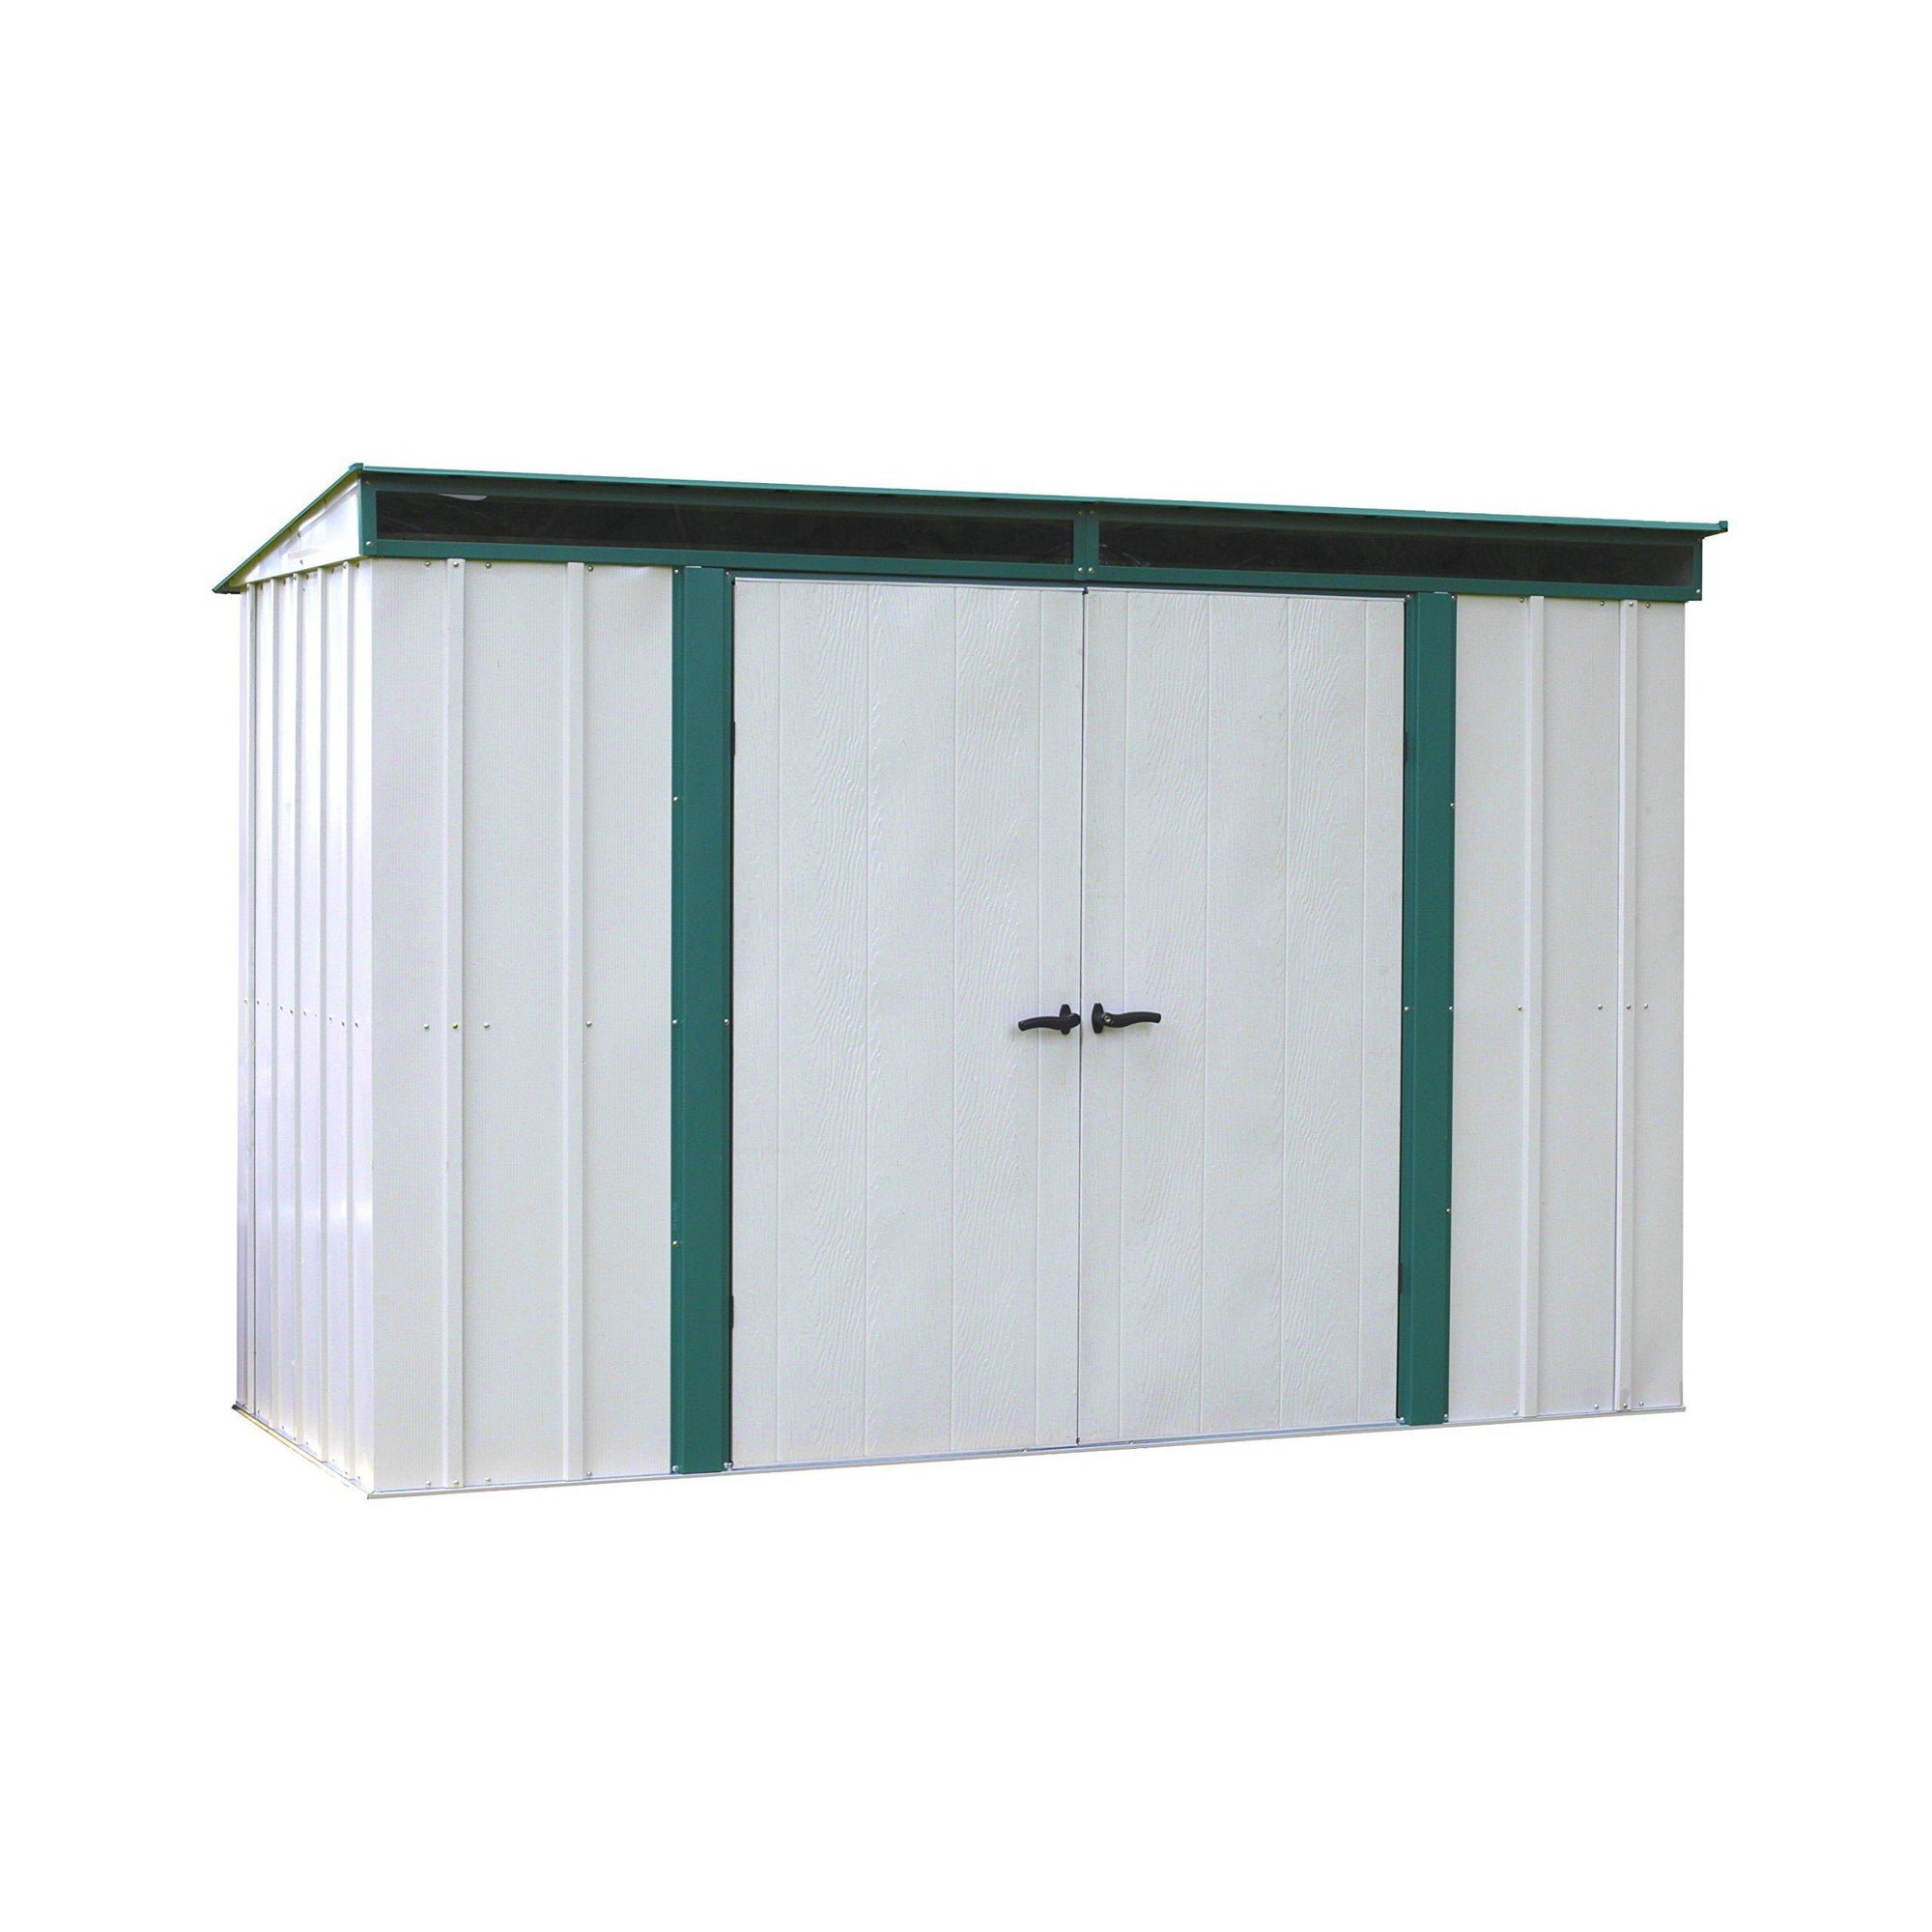 Arrow ELPHD104 Euro-Lite Steel Storage Pent Shed Green/Eggshell, 10' x 4', Meadow Green/Eggshell